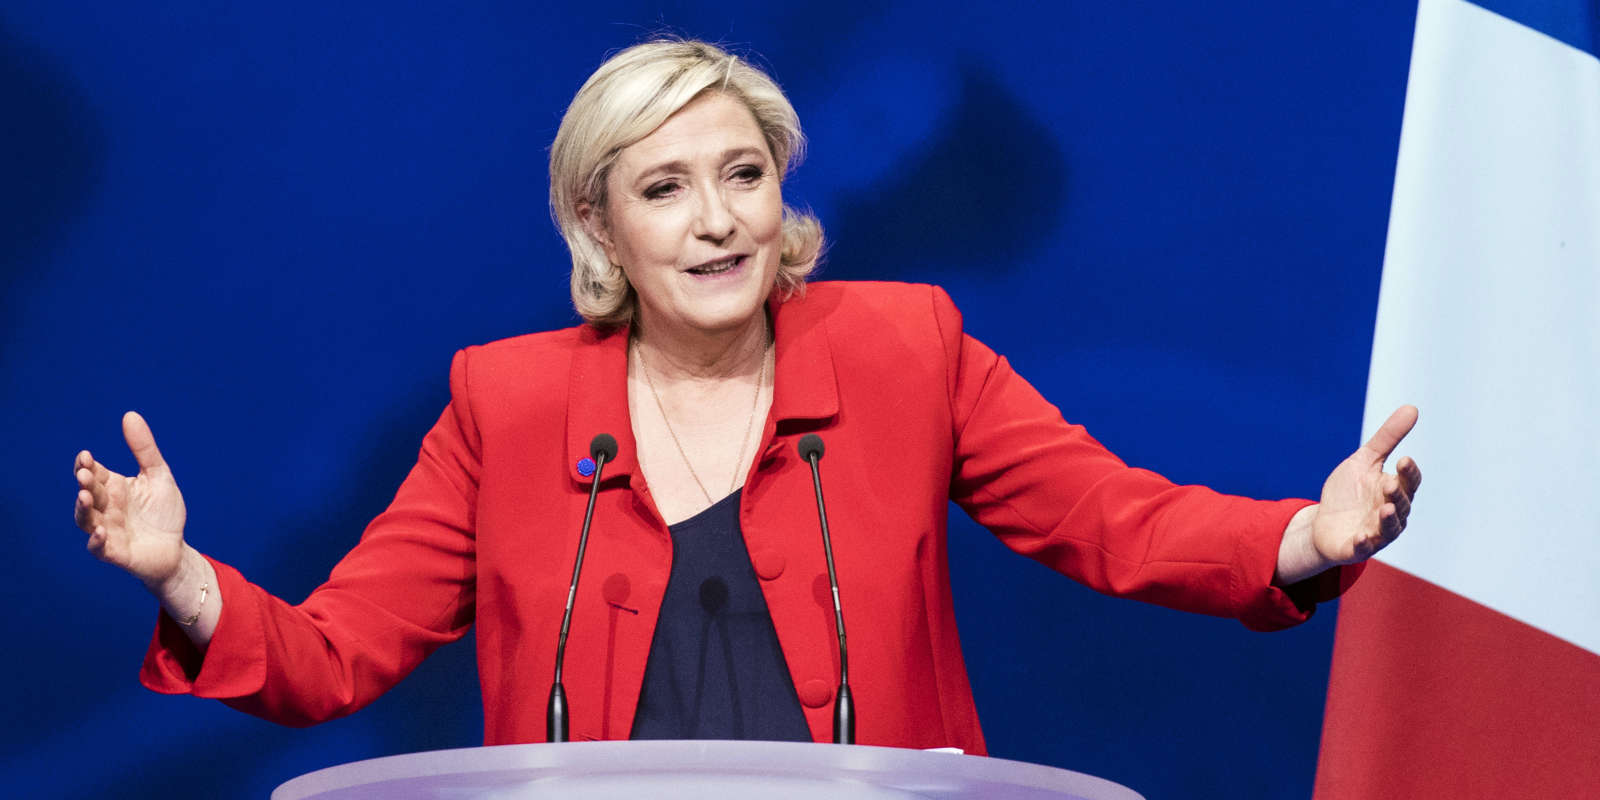 FILE - In this Monday, April 17, 2017 file photo, far-right candidate for the presidential election Marine Le Pen speaks during a campaign meeting in Paris. They could hardly be more different: Pro-European centrist Emmanuel Macron is facing anti-immigration, anti-EU Marine Le Pen in France's presidential runoff May 7. (AP Photo/Kamil Zihnioglu, file)